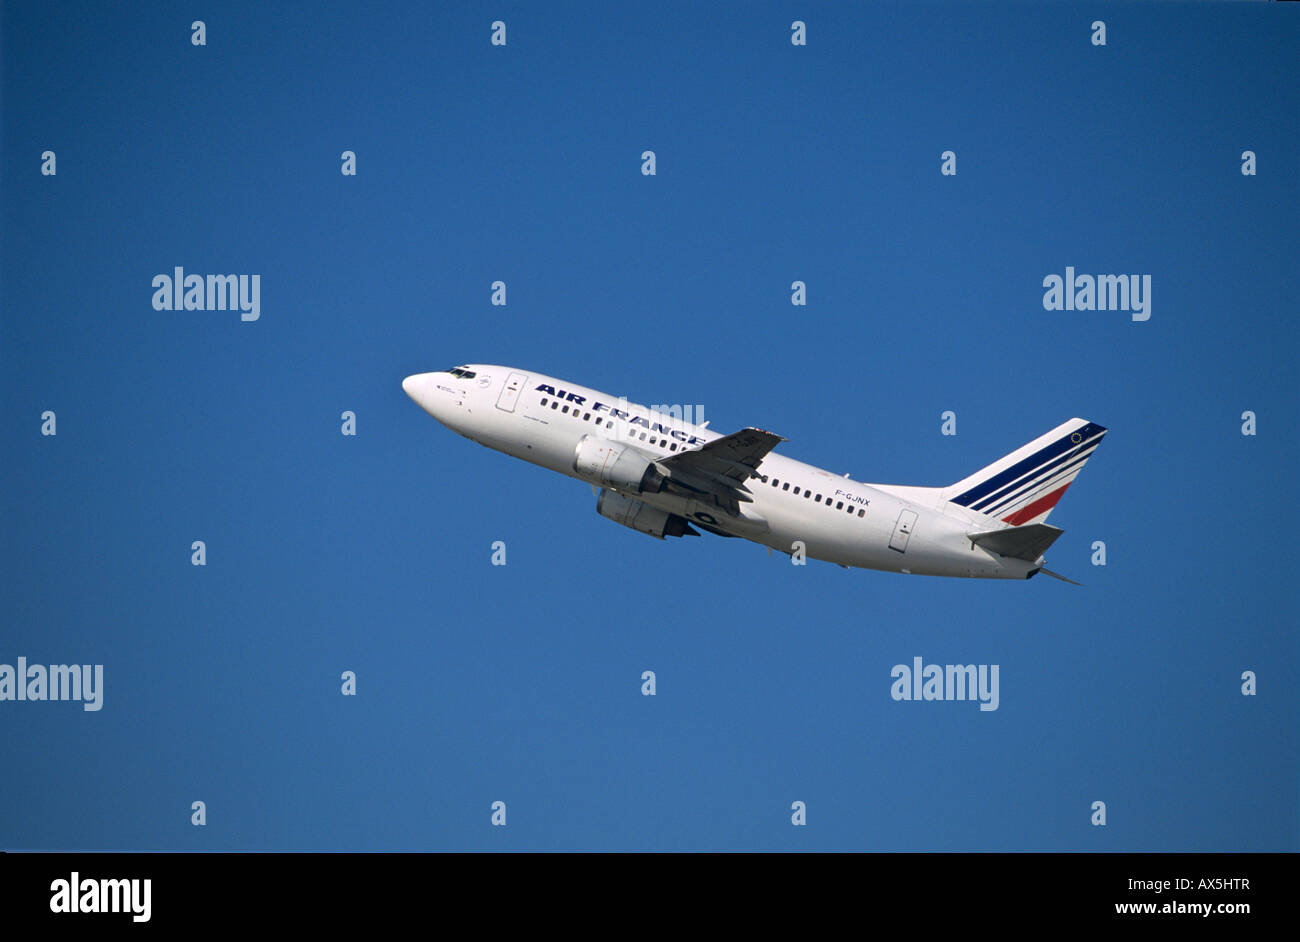 Air France Boeing 737-800 passenger jet during ascent - Stock Image